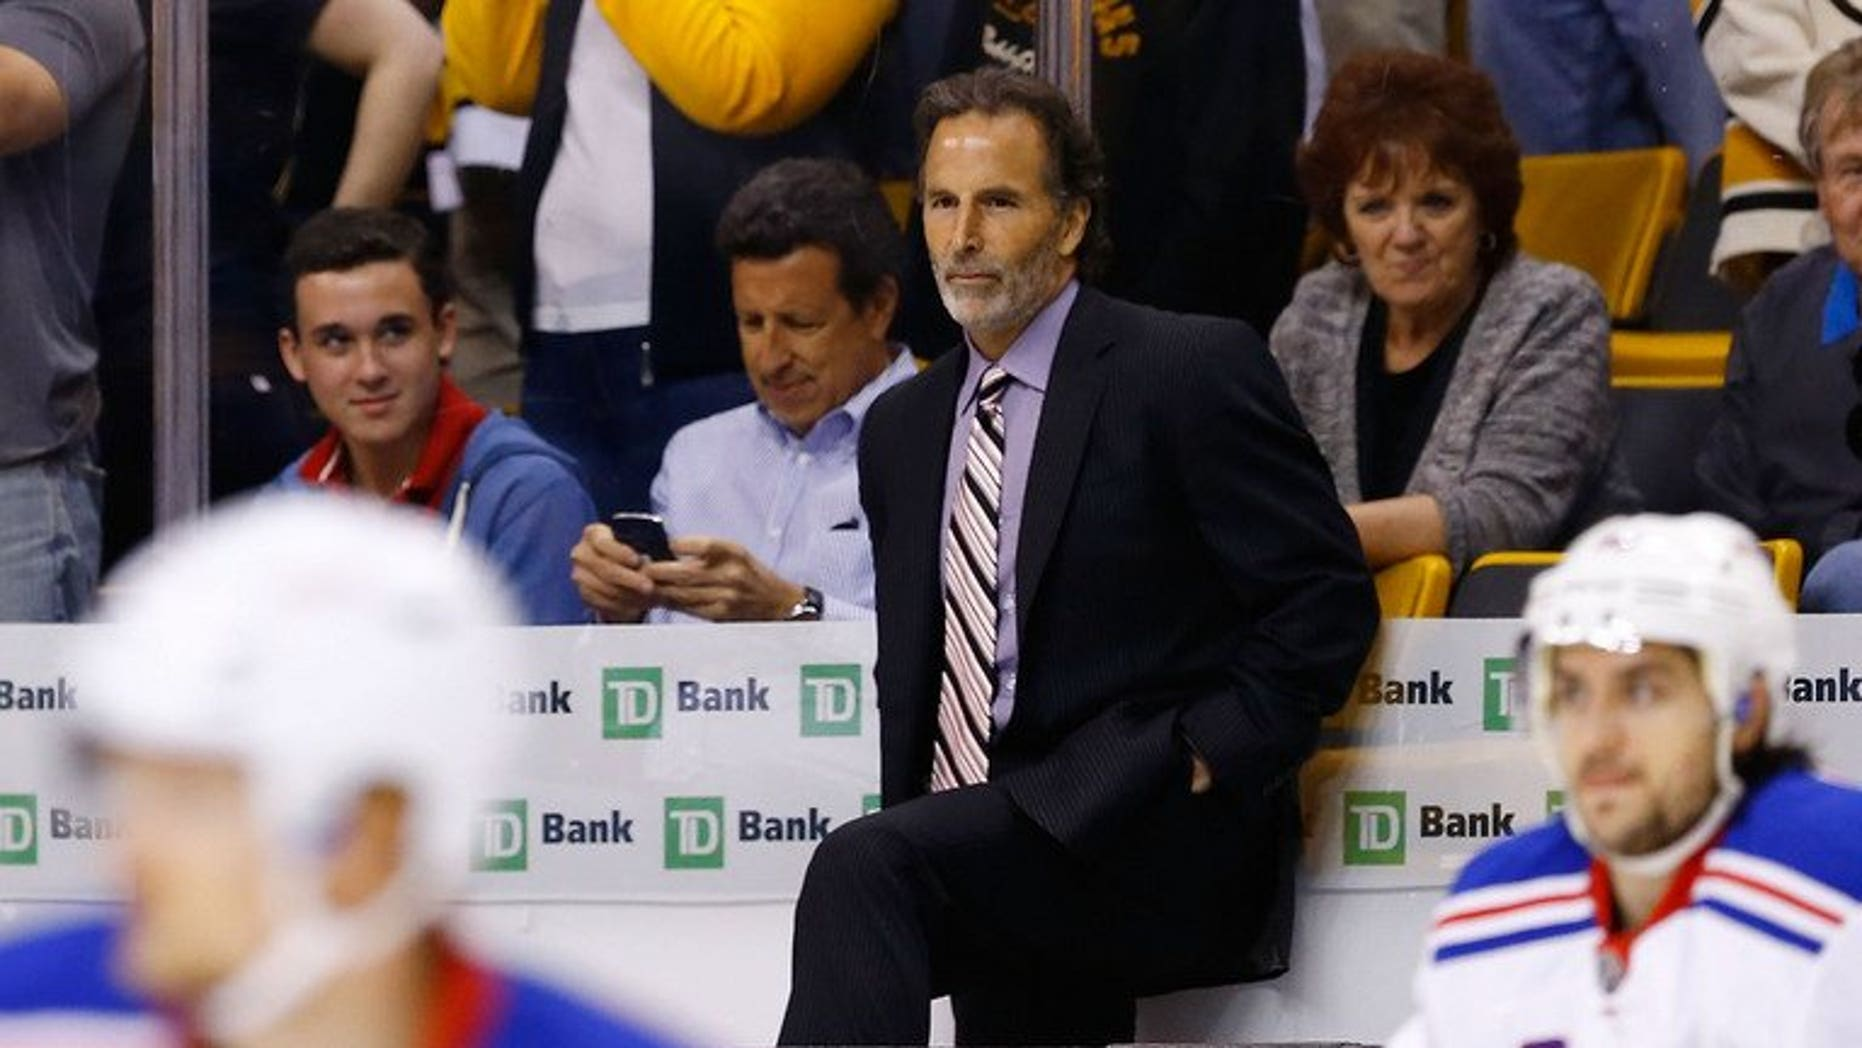 John Tortorella is seen during the 2013 NHL Stanley Cup Playoffs on May 19, 2013 at TD Garden in Boston, Massachusetts. Tortorella was named coach of the National Hockey League's Vancouver Canucks on Tuesday, completing what turned out to be a swap of coaches with the New York Rangers.